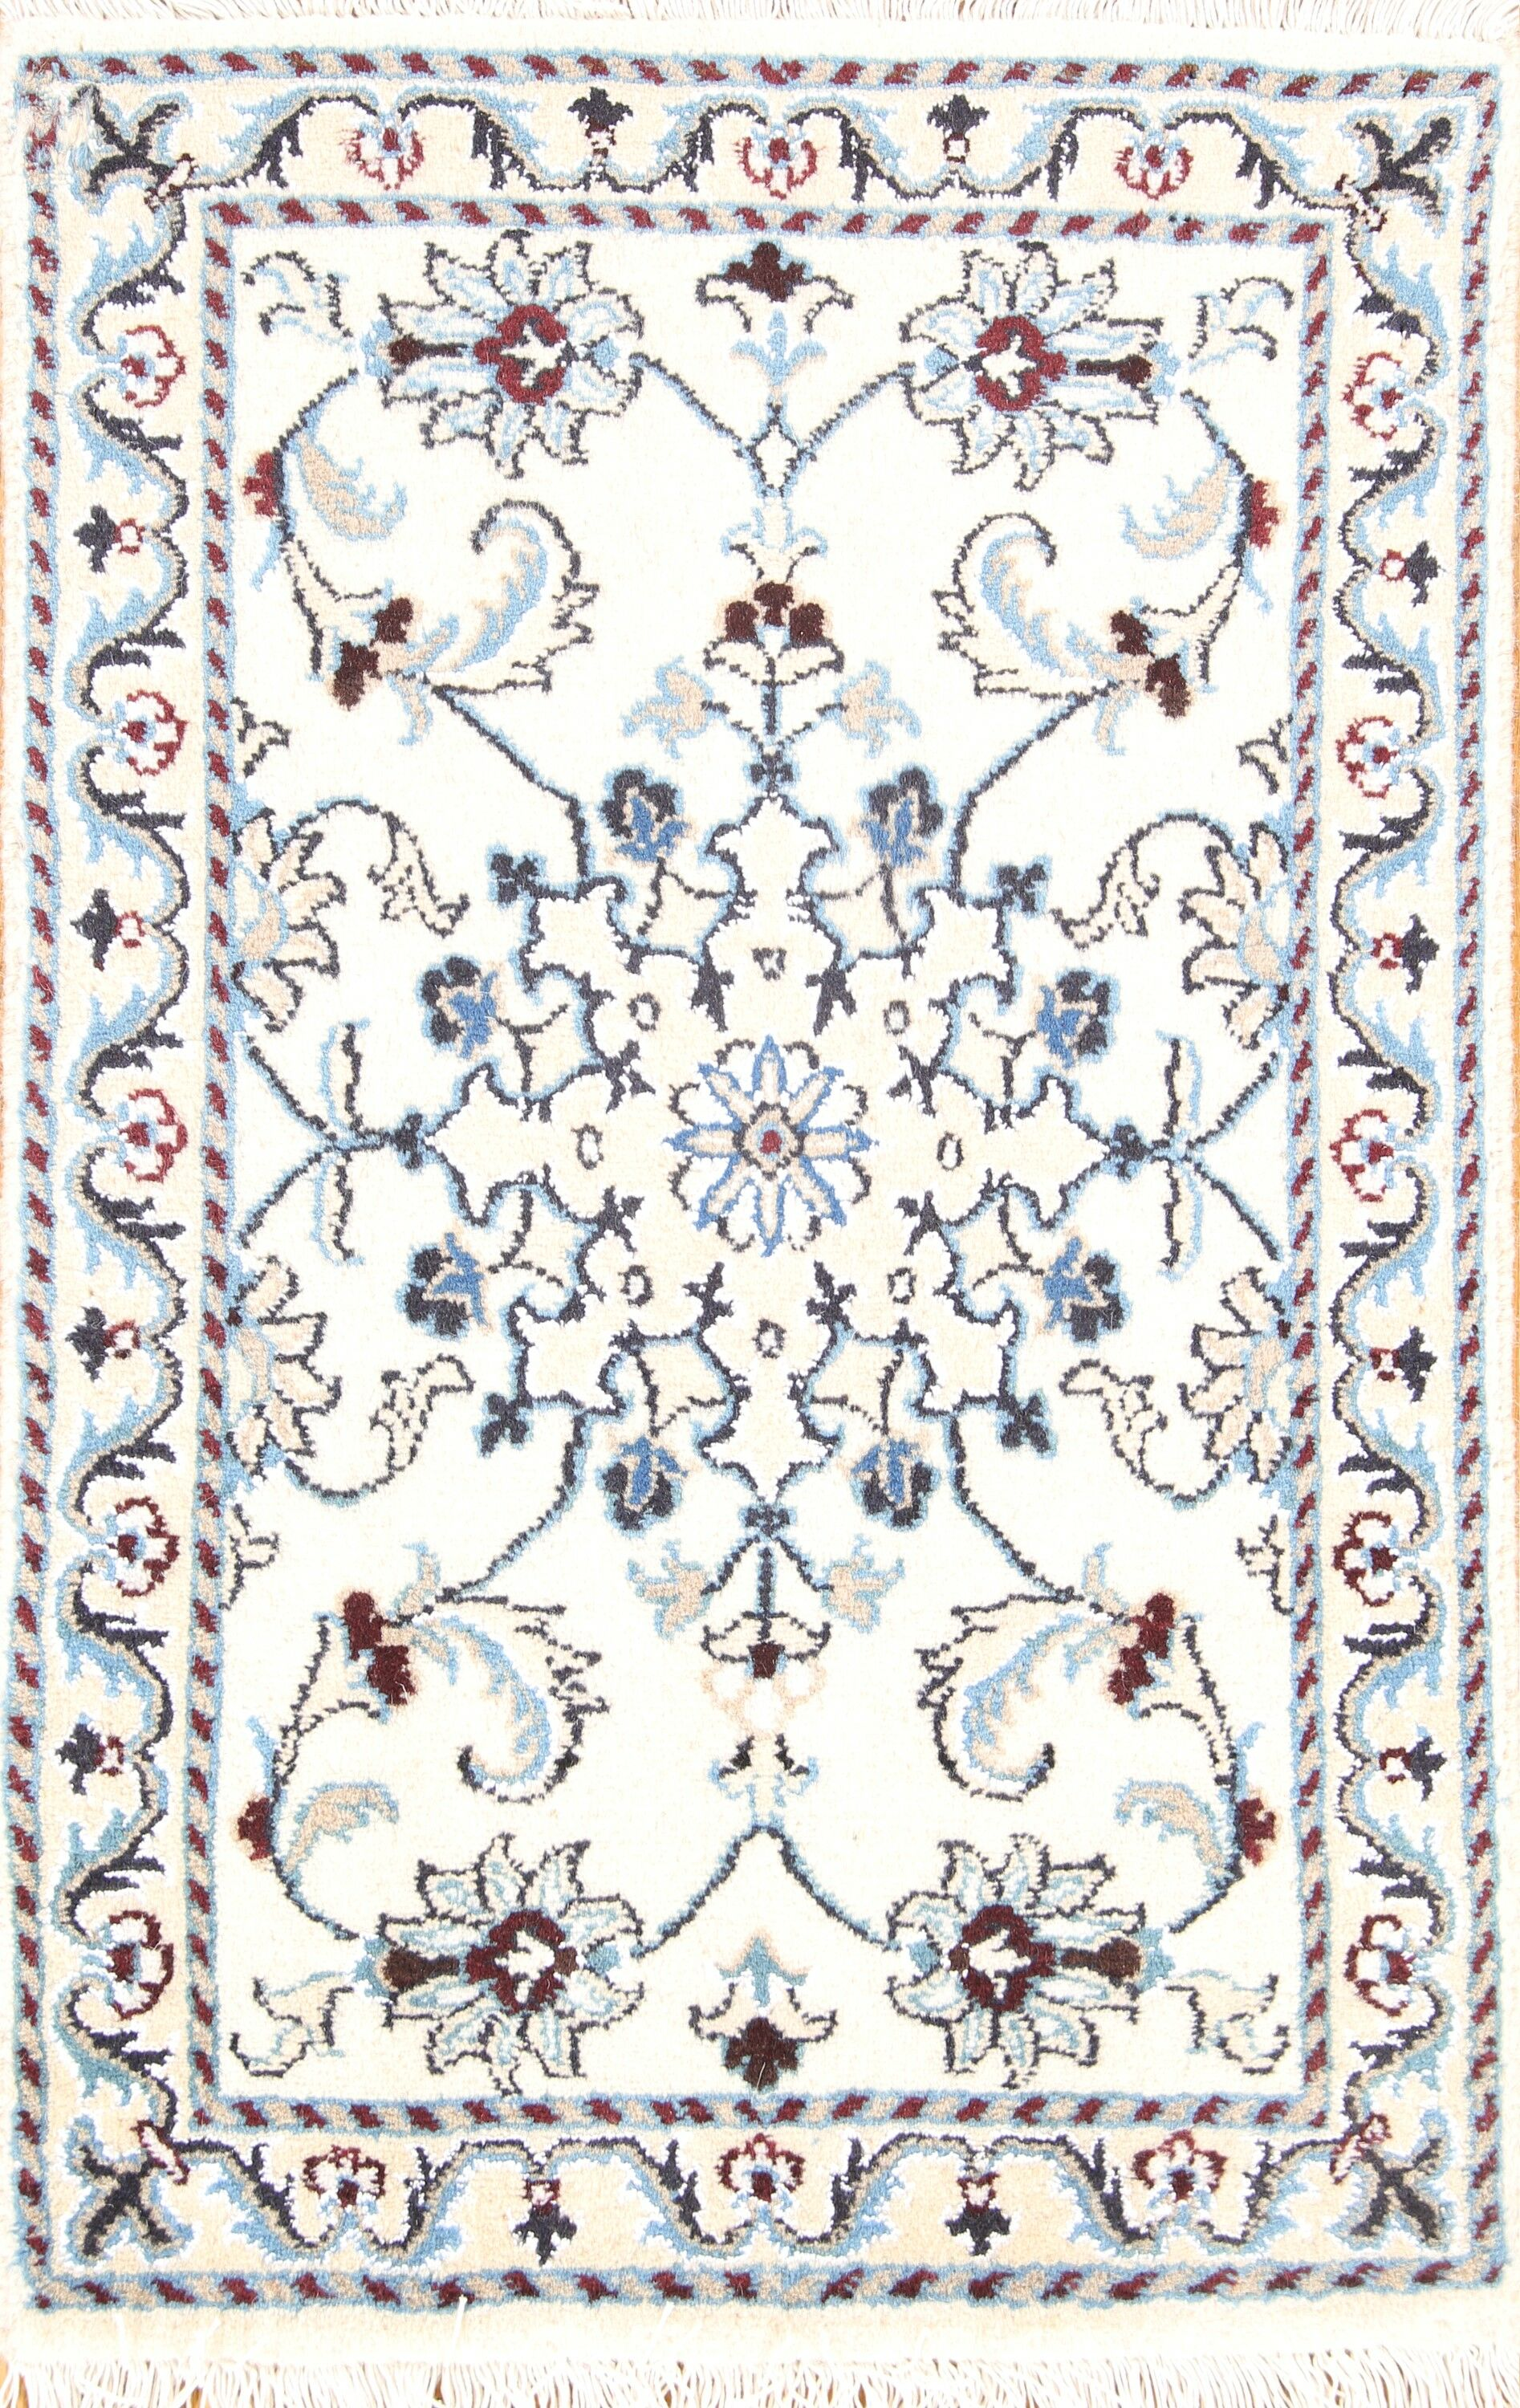 One-of-a-Kind Nain Isfahan Persian Hand-Knotted 1'10